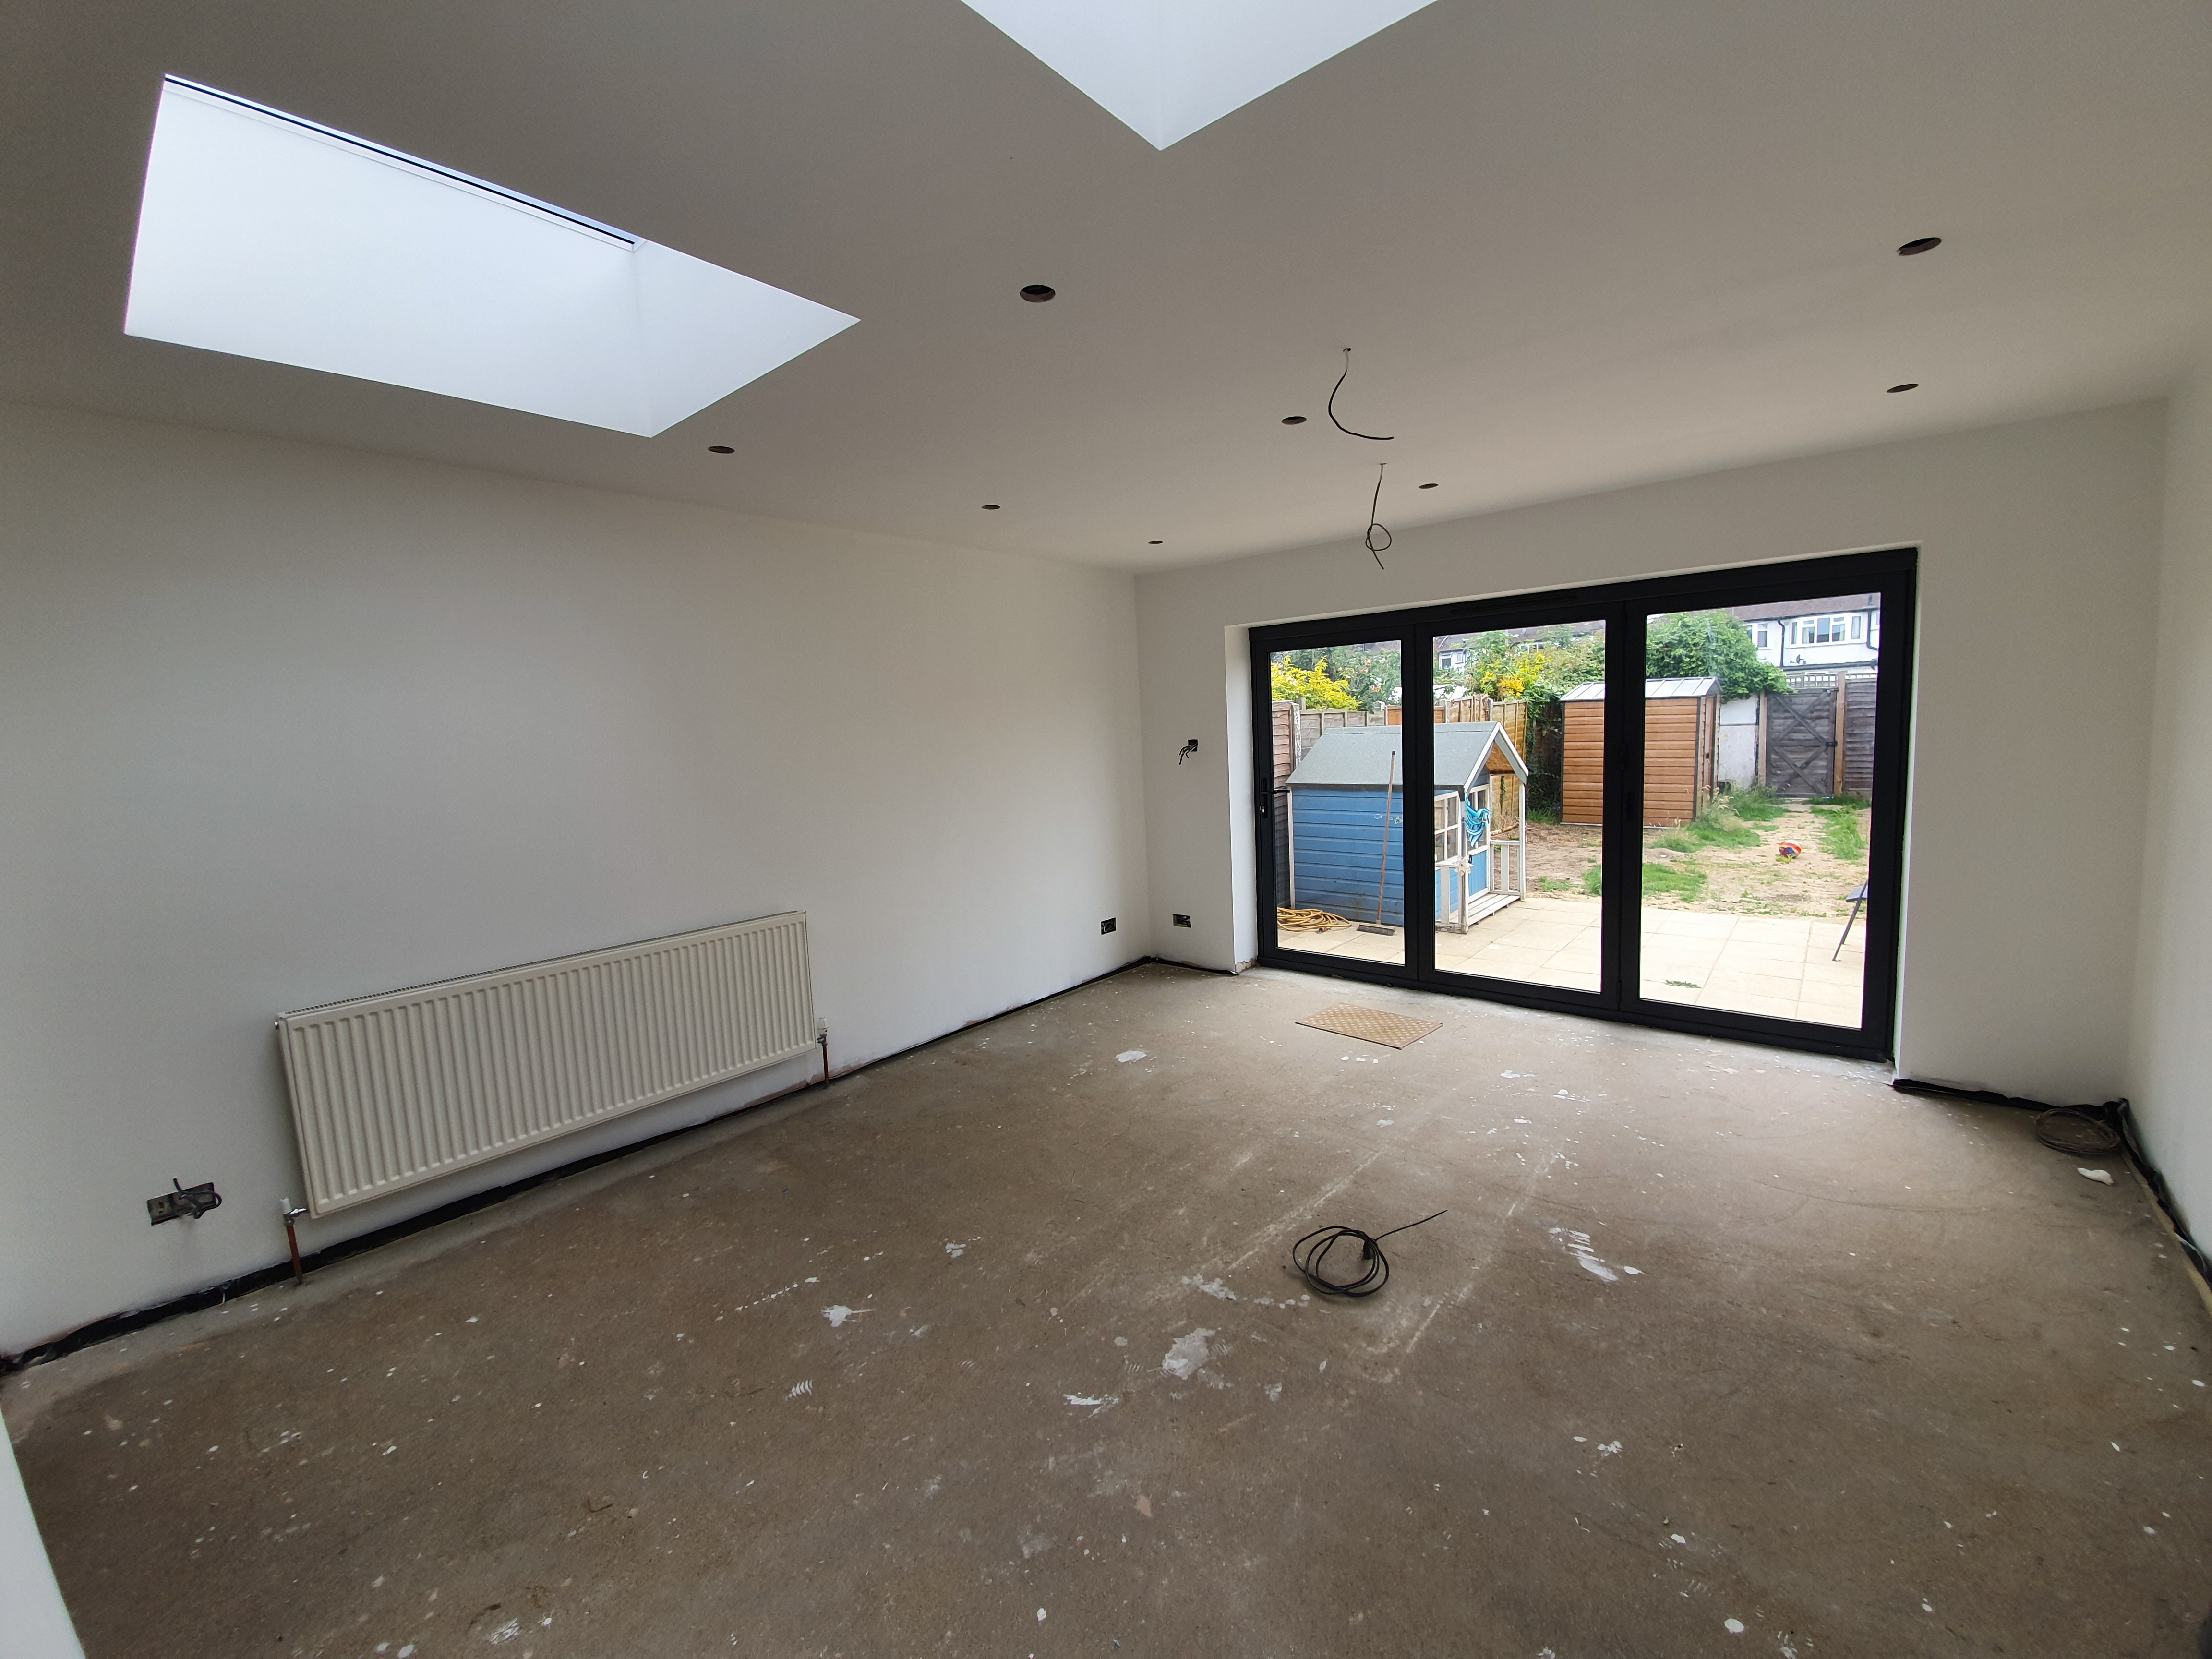 5 Meter groud floor extension wit large bespoke bi-folding doors and two 1.1m x 1.1m roof lights to allow plenty of light into the room